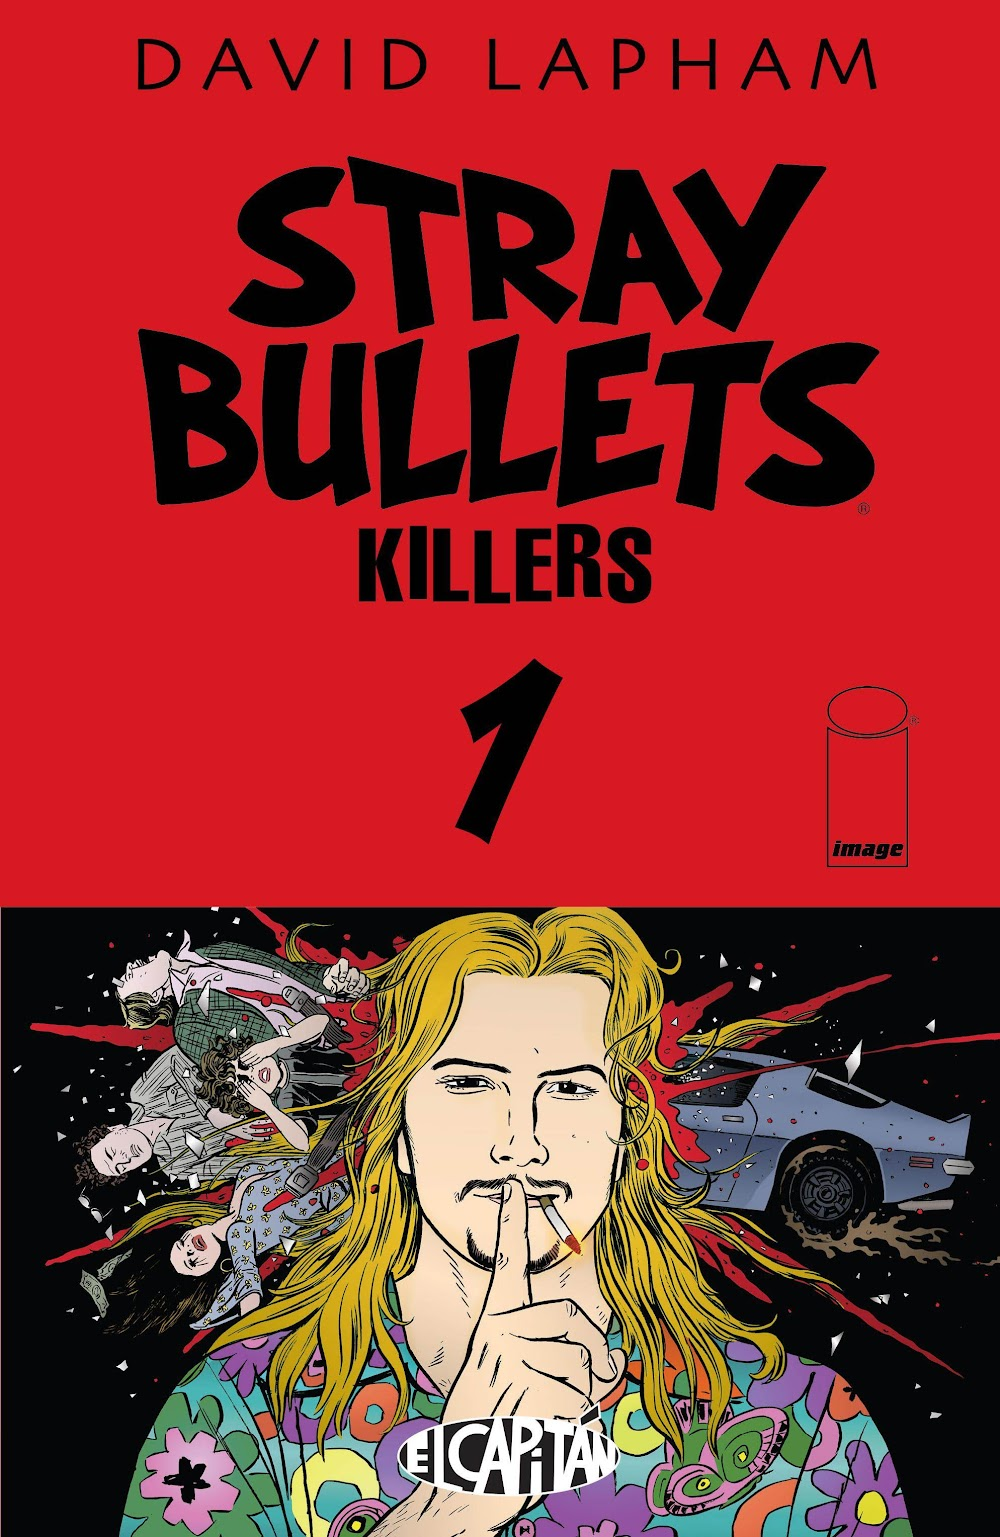 Stray Bullets: Killers (2014) - complete